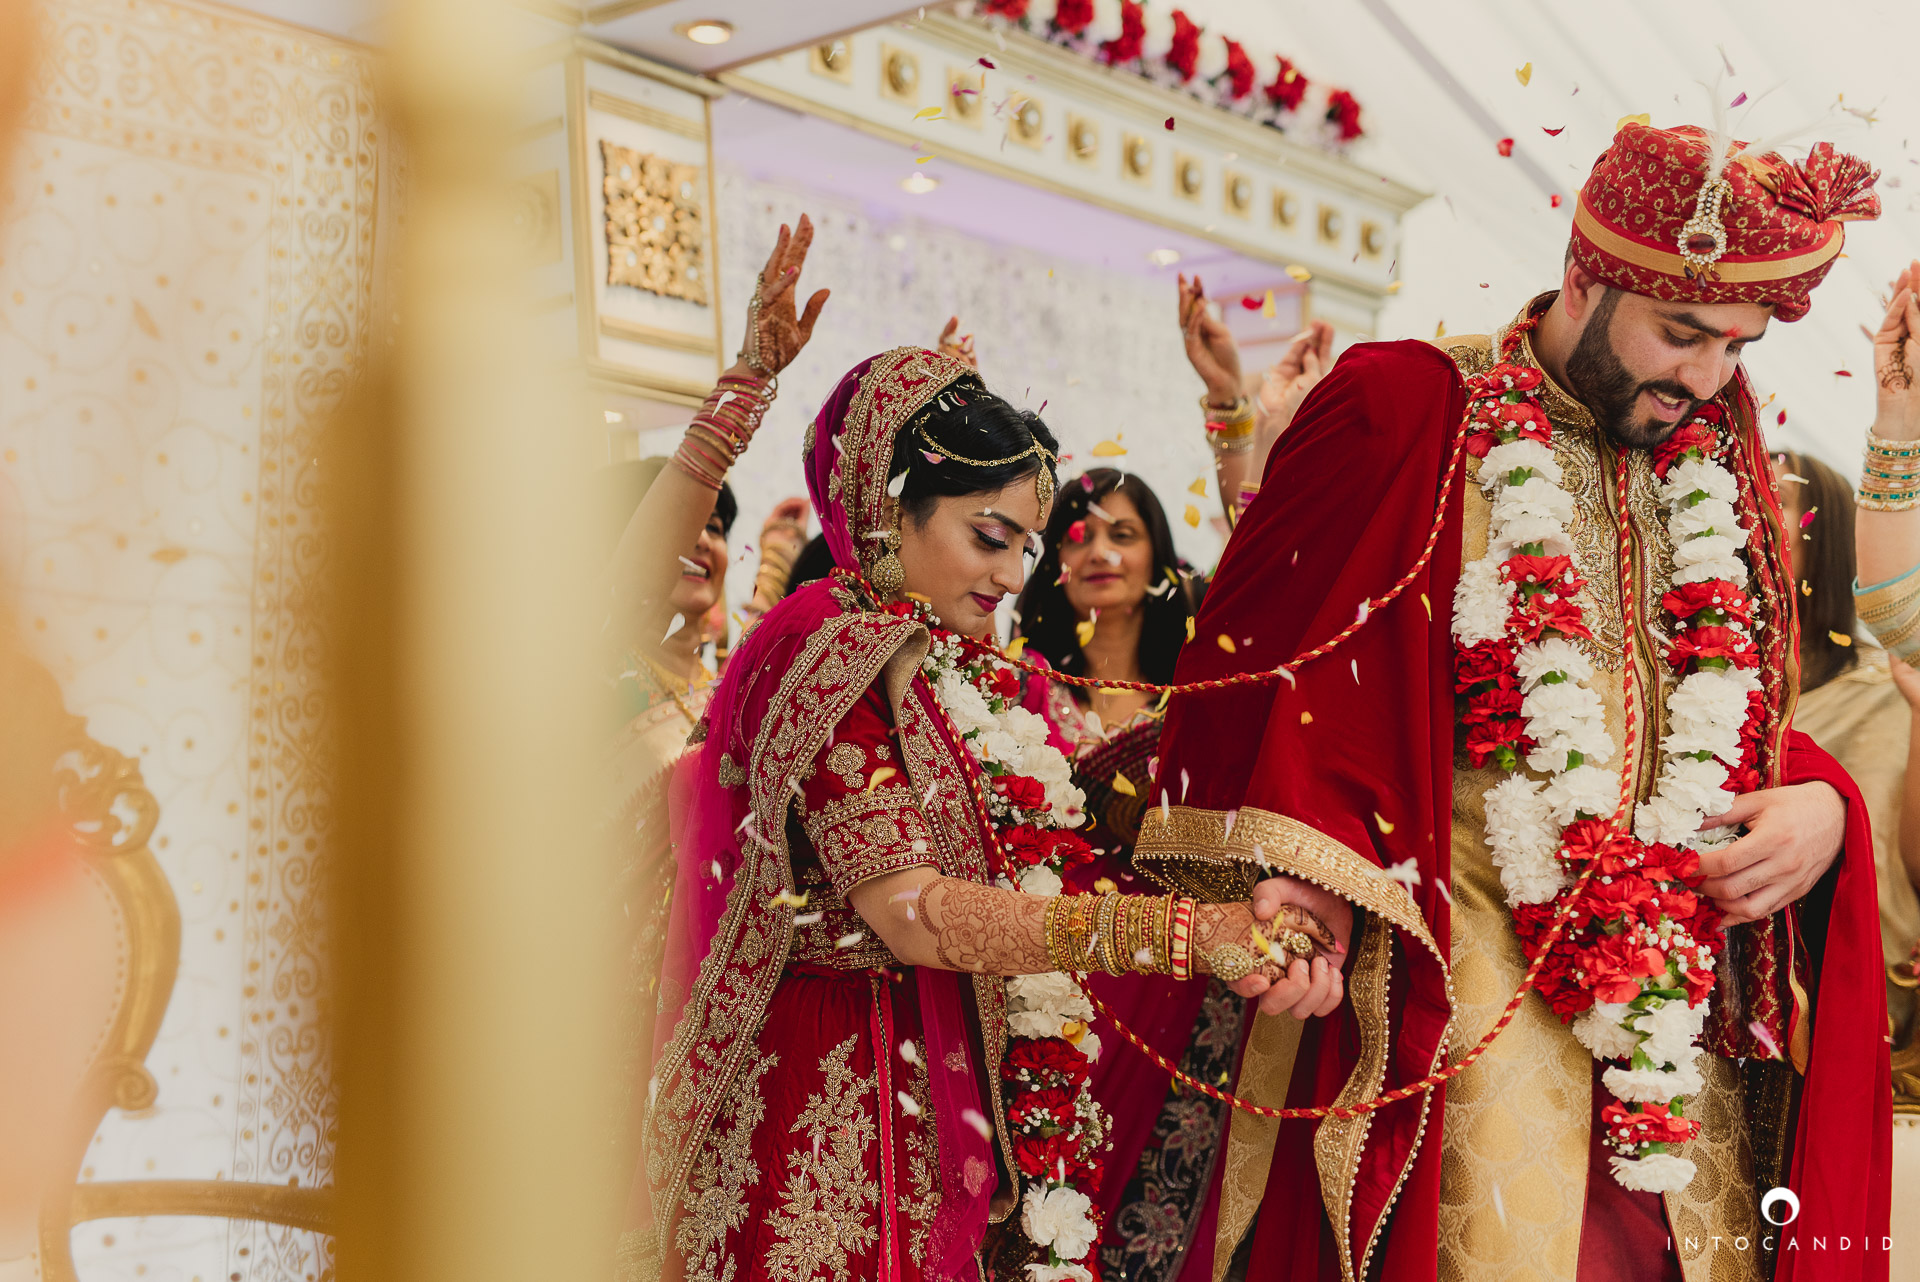 London_Wedding_Photographer_Intocandid_Photography_Ketan & Manasvi_53.JPG